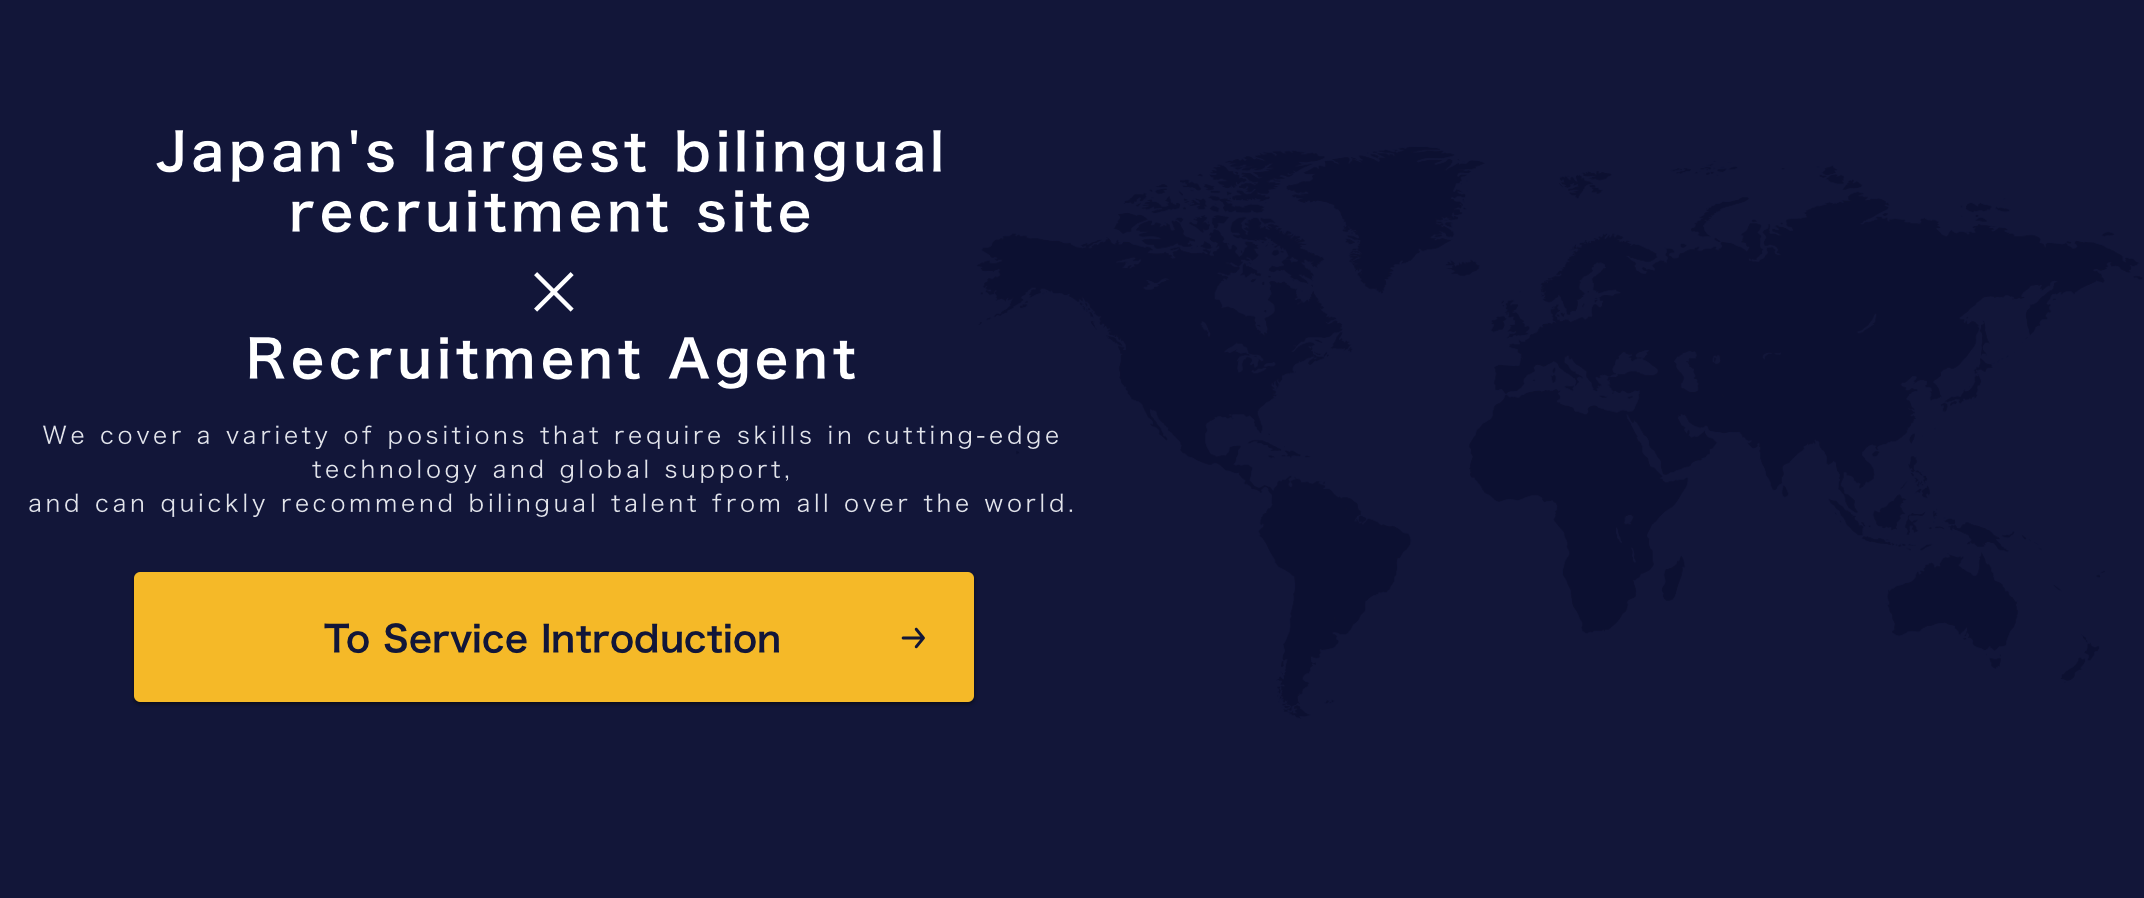 Japan's largest bilingual recruitment site × Recruitment Agent We cover a variety of positions that require skills in cutting-edge technology and global support, and can quickly recommend bilingual talent from all over the world.